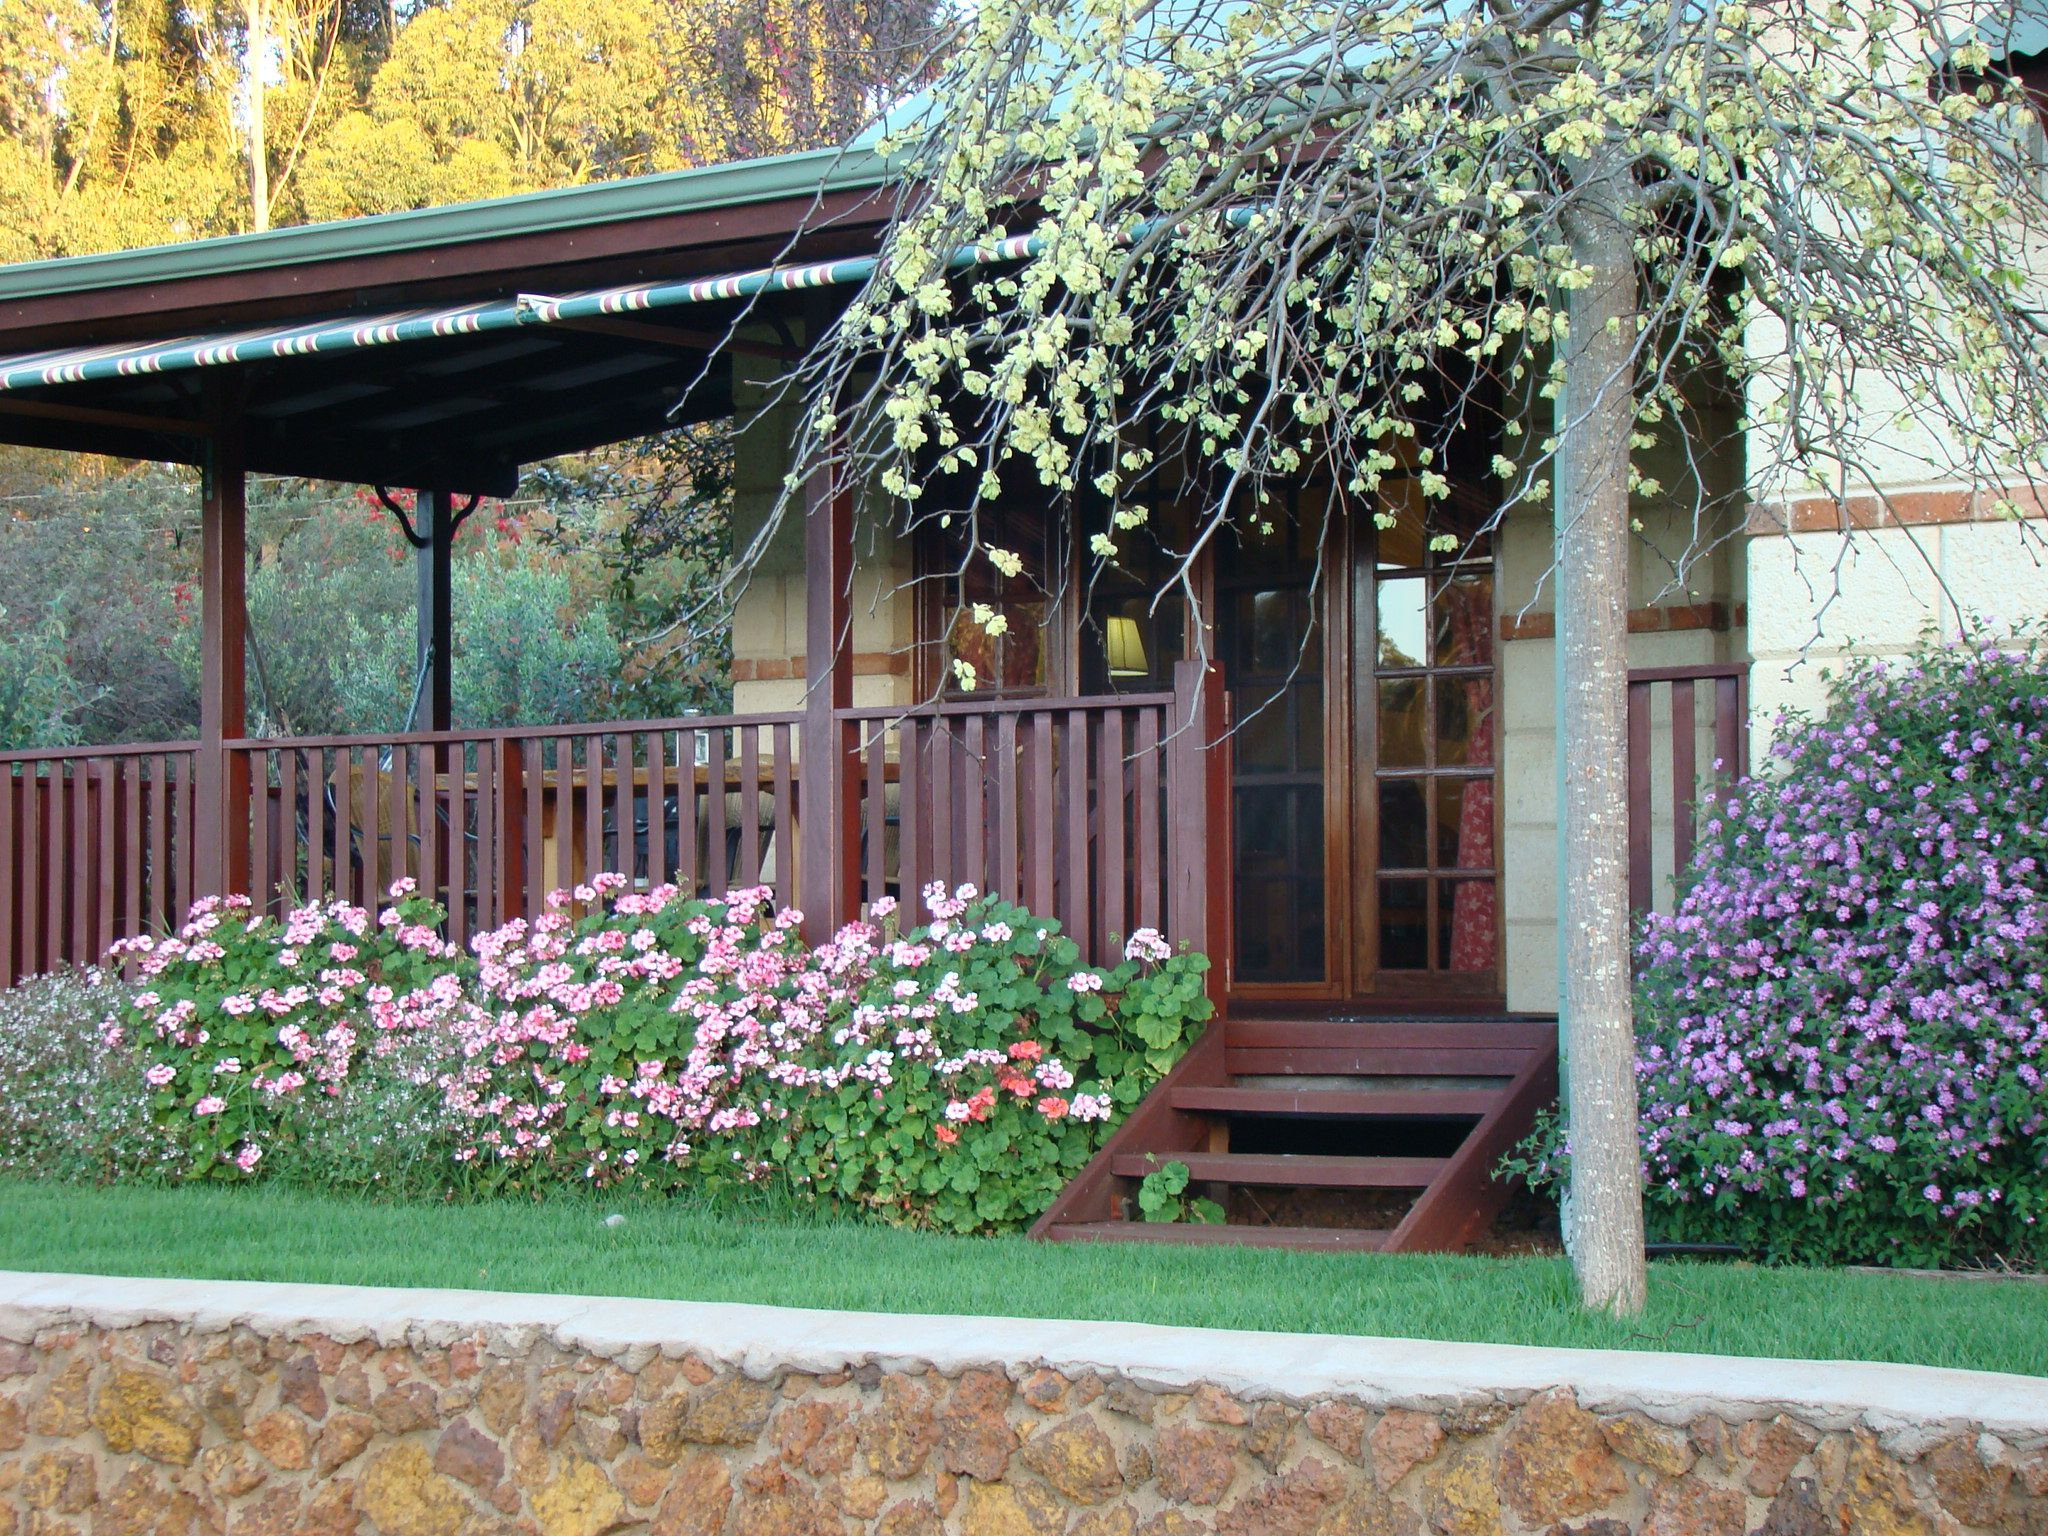 Cottage gardens australia front yard back yard for Back garden designs australia